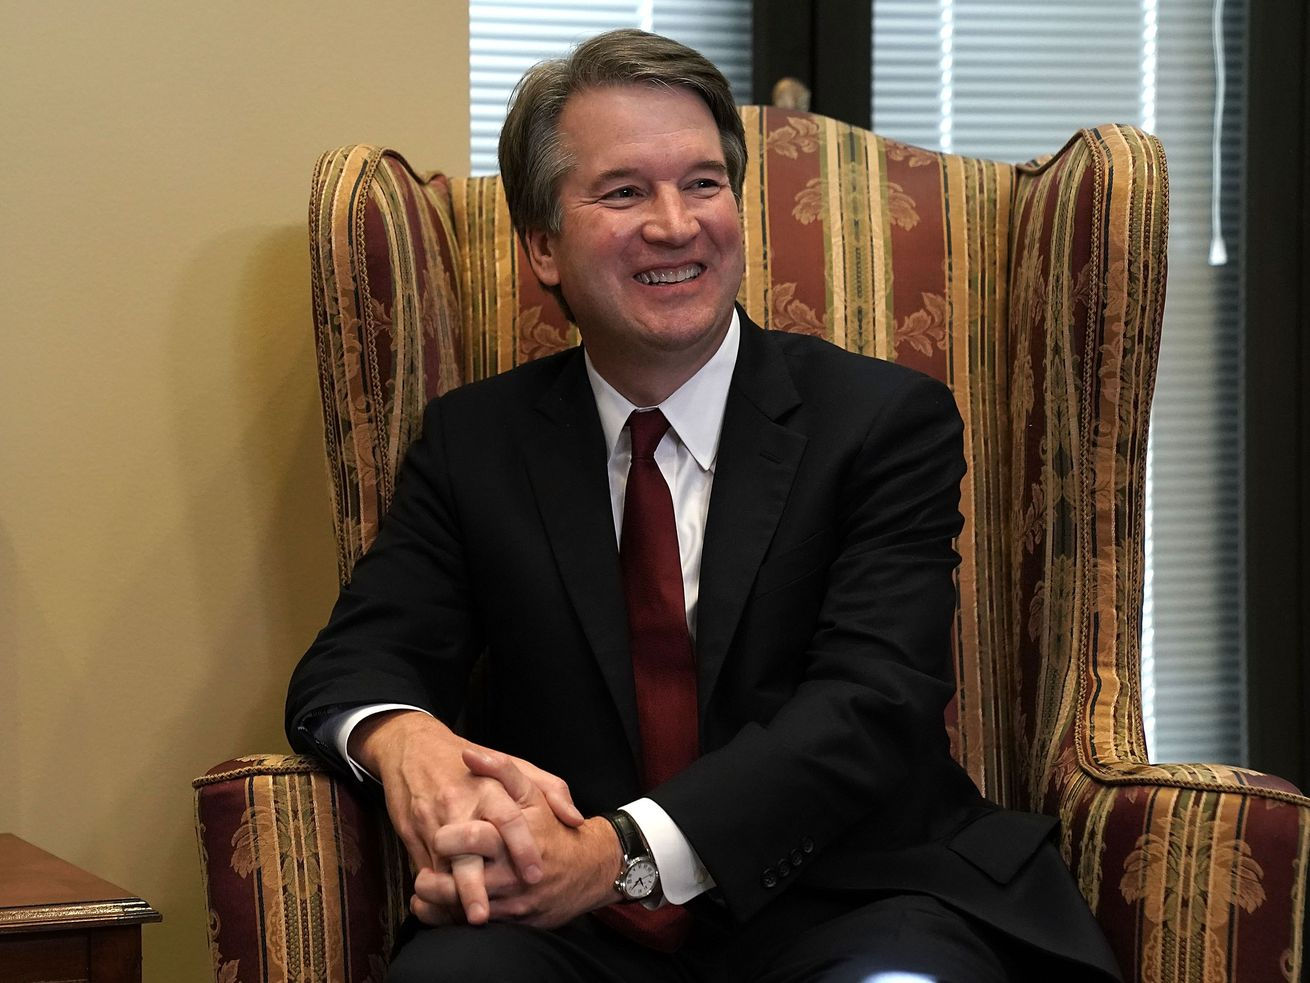 Supreme Court nominee Judge Brett Kavanaugh during a meeting with Sen. Dean Heller (R-NV) on July 18, 2018, in Washington, DC.